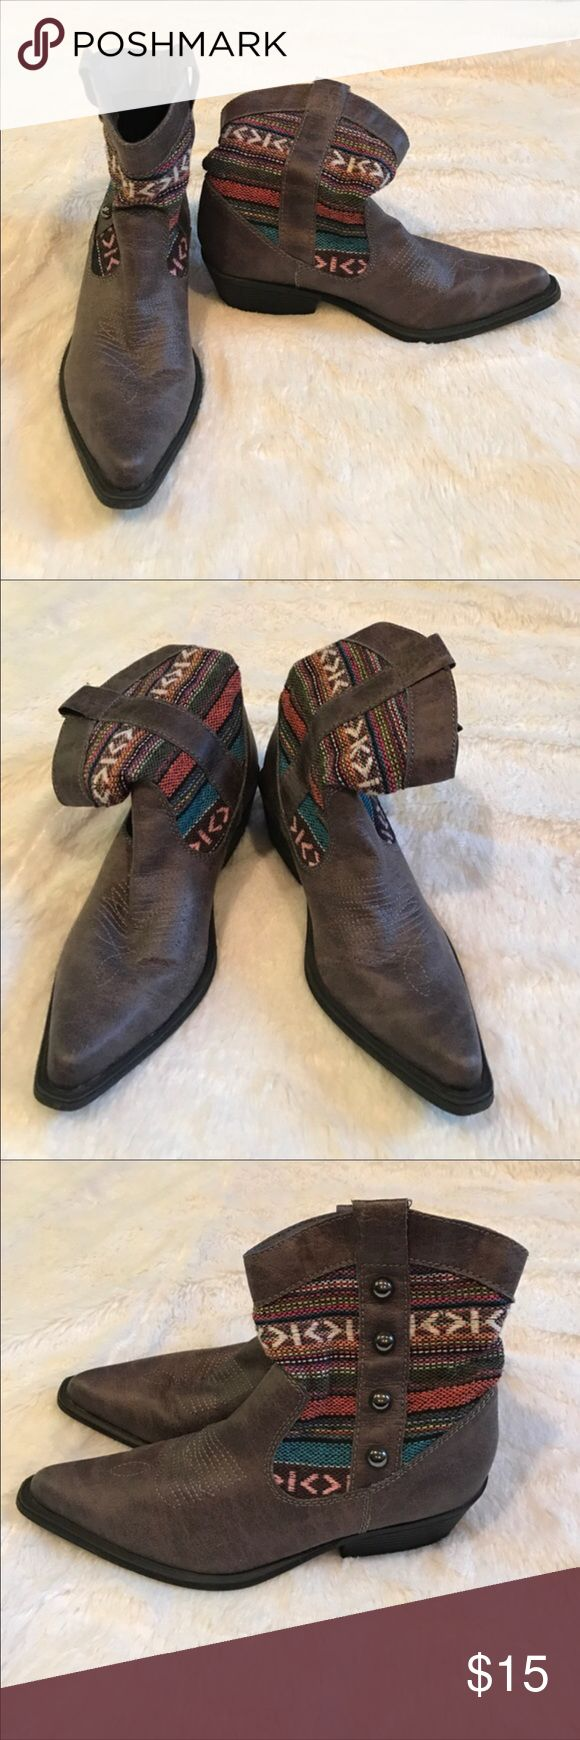 Madden Girl cowboy boots Great condition. Bought but they fit to snug. Madden Girl Shoes Ankle Boots & Booties